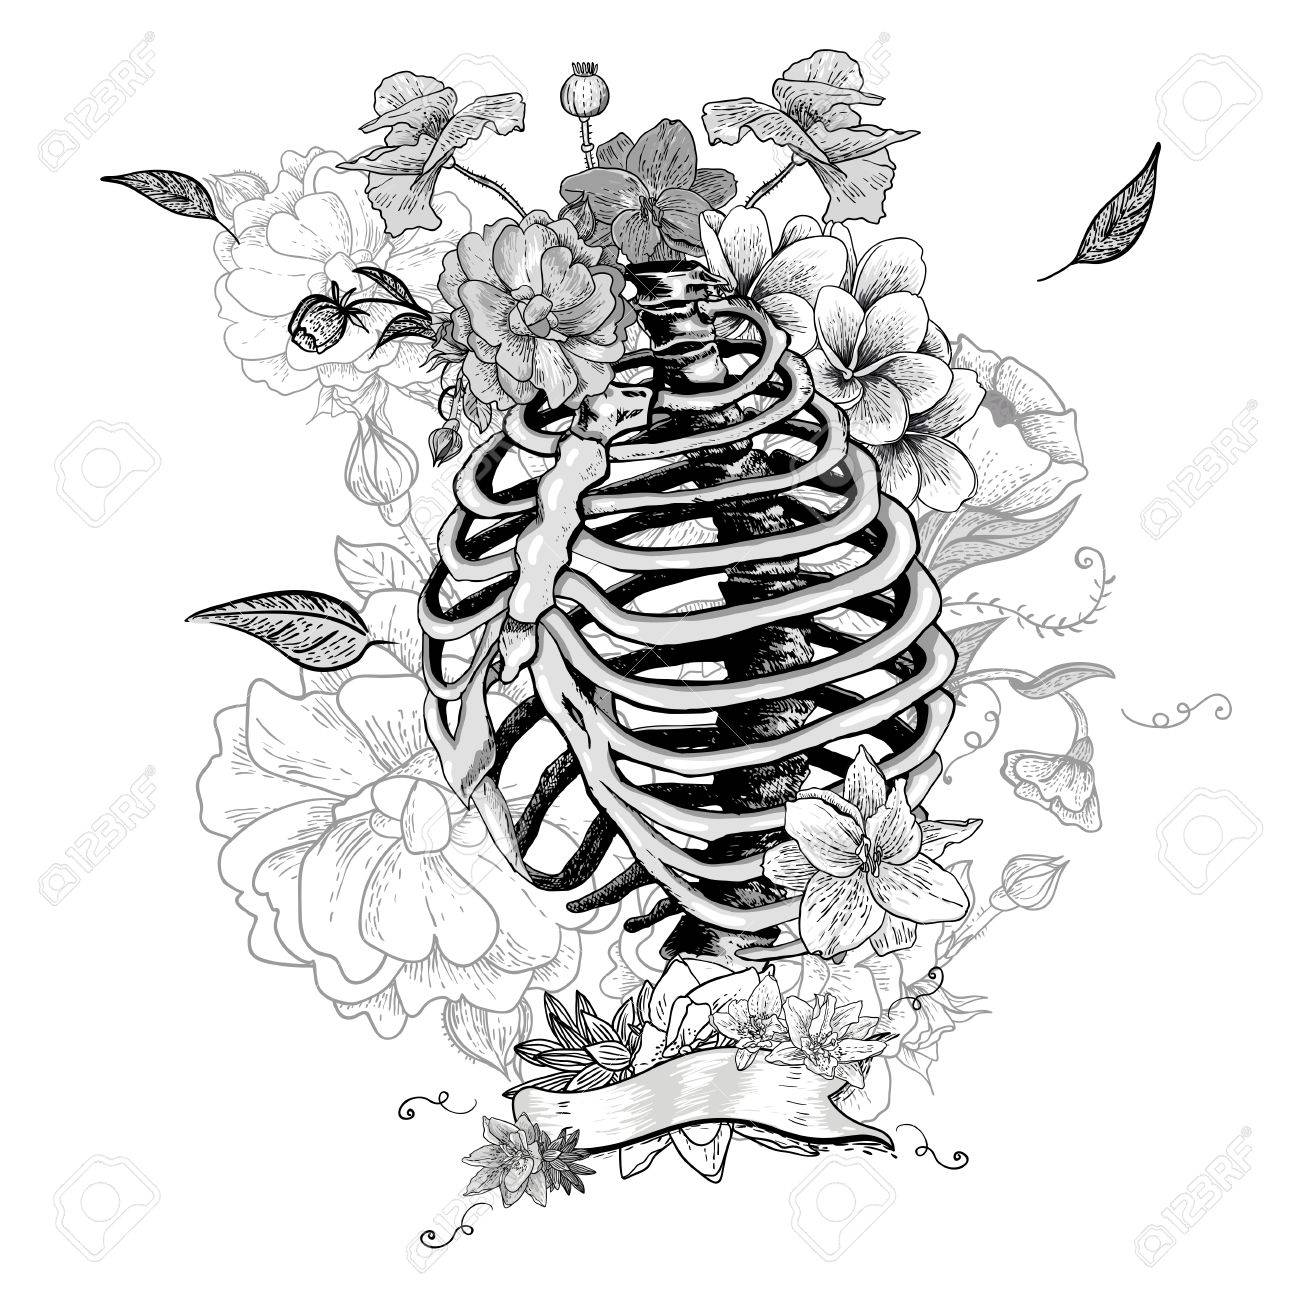 Skeleton Ribs and Flowers, Vector illustration Stock Vector - 37817452